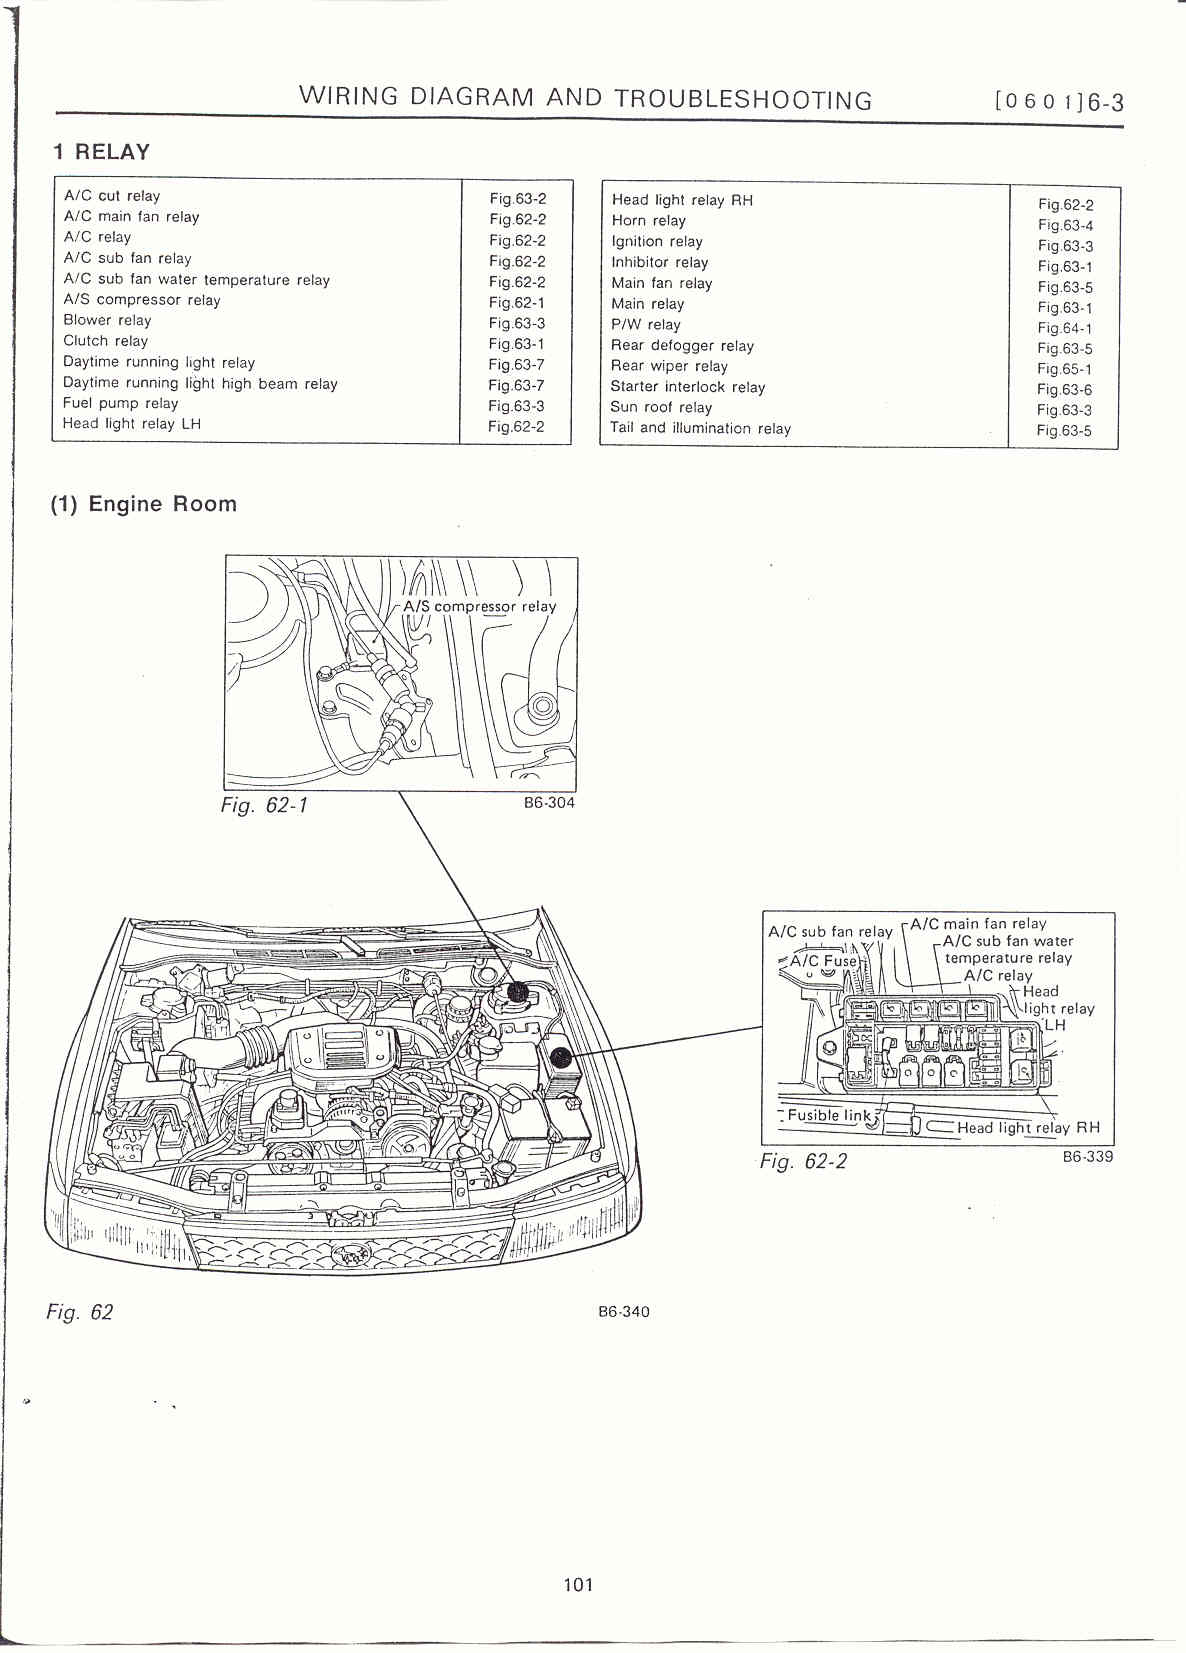 subaru legacy transmission wiring diagram subaru legacy audio wiring diagram